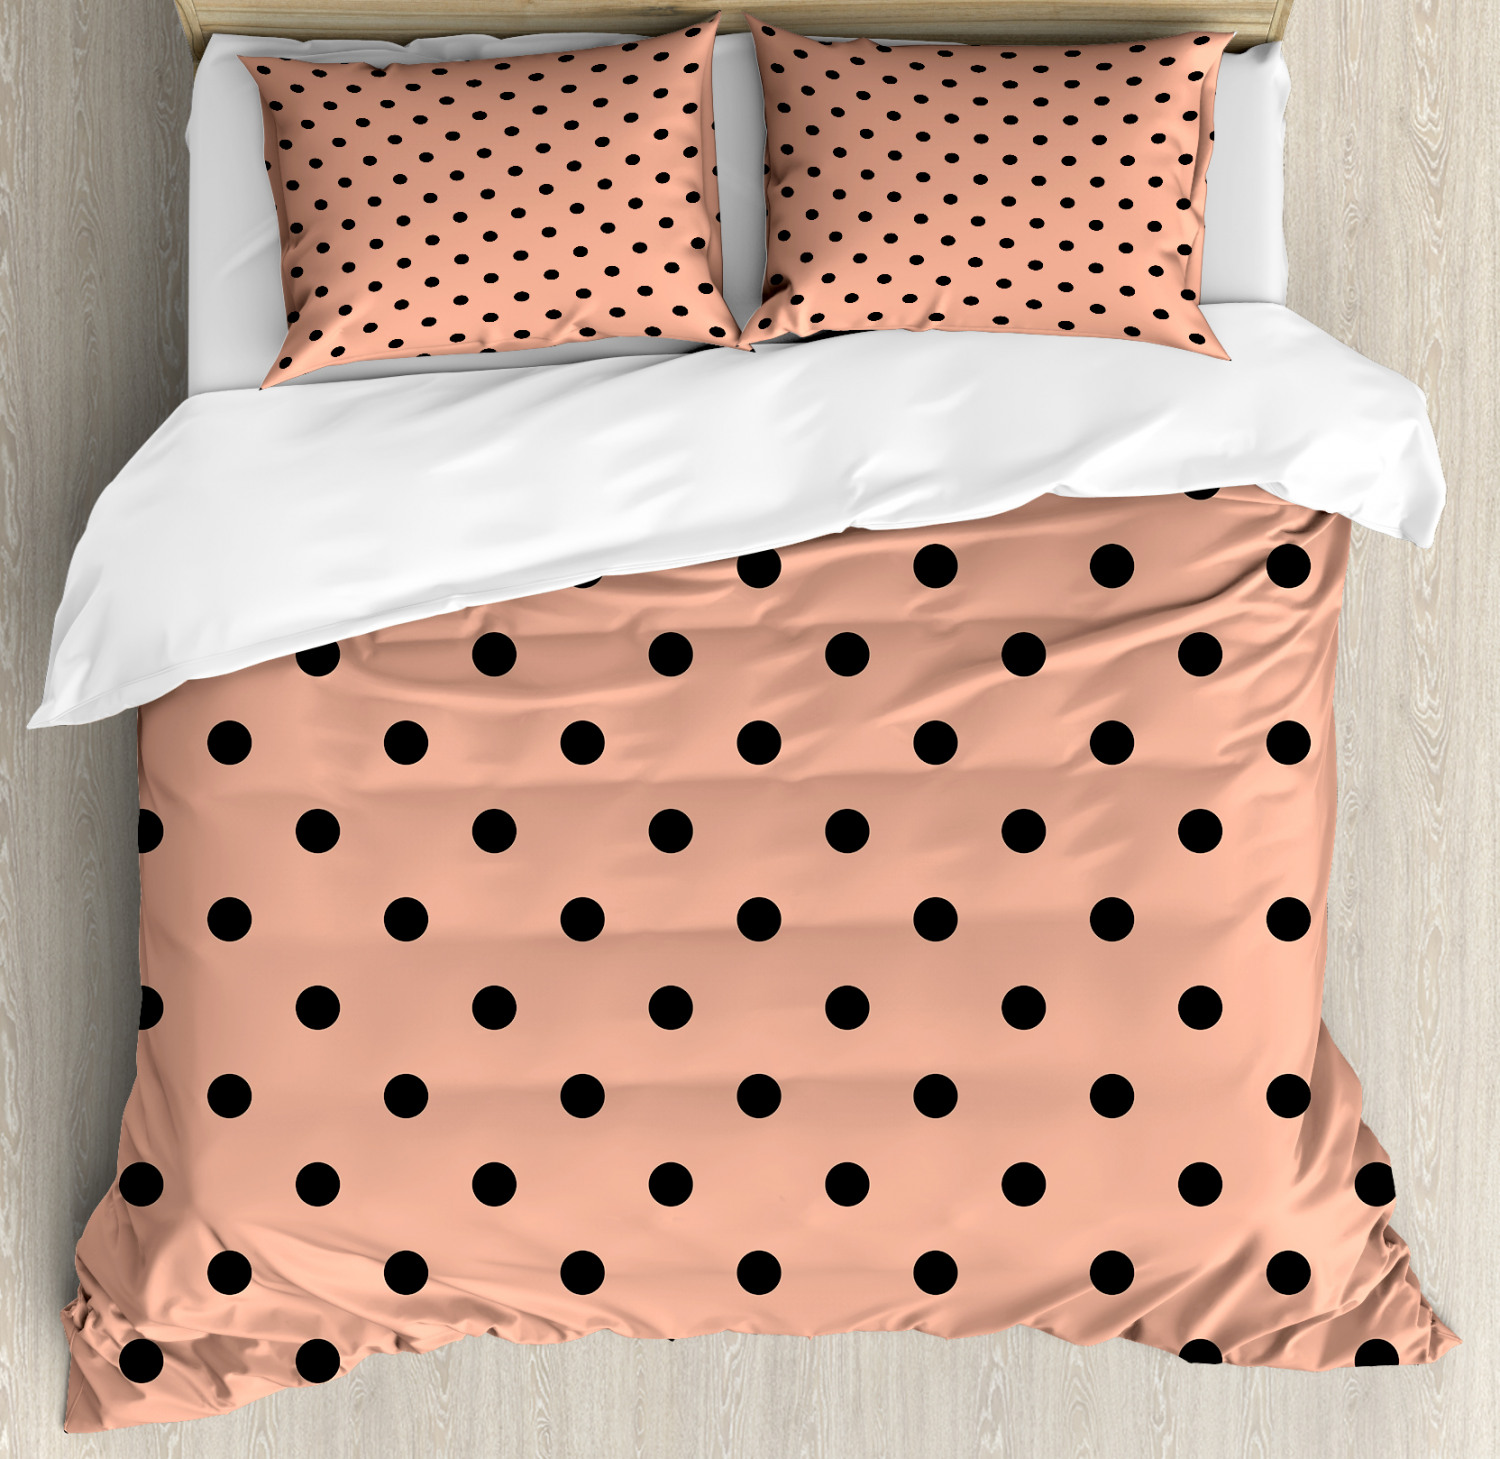 peach king size duvet cover set traditional black polka dots on soft colored background abstract european design decorative 3 piece bedding set with 2 pillow shams peach black by ambesonne walmart com walmart com